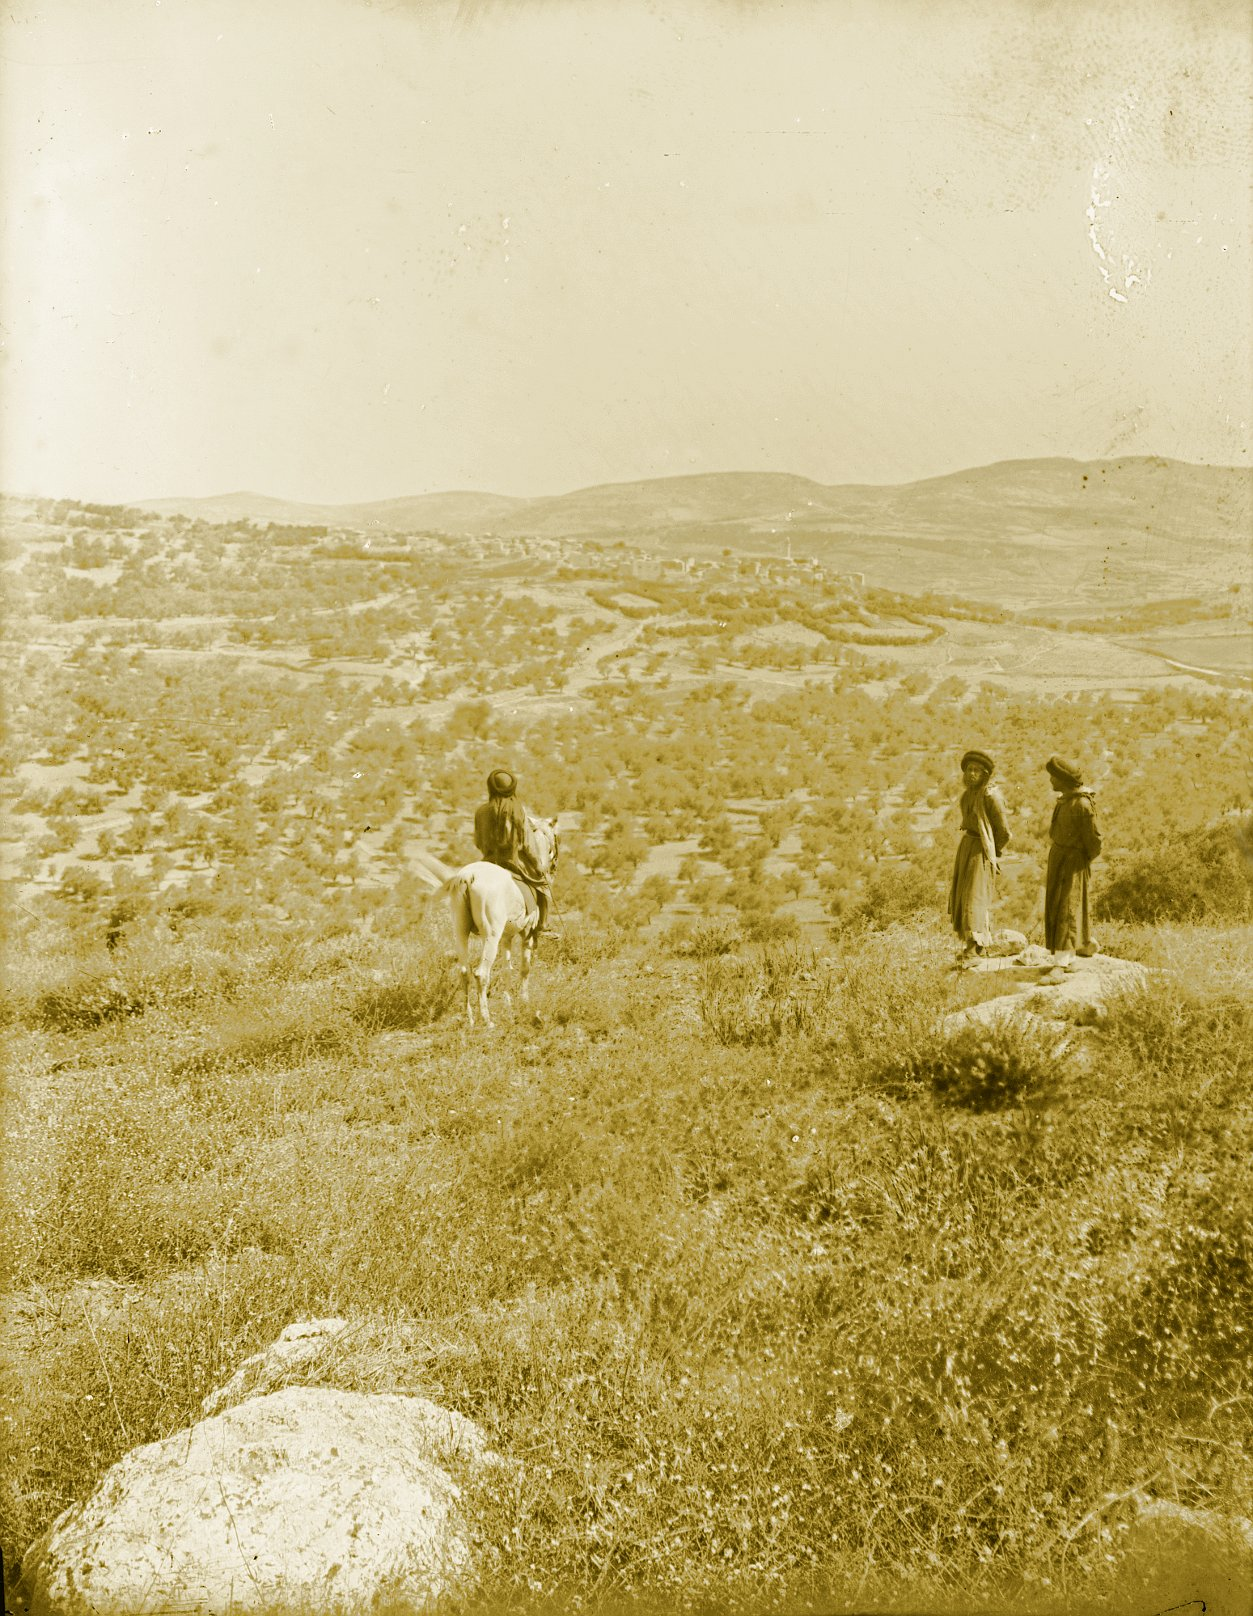 Nablus - نابلس : NABLUS - Late 19th, early 20th c. 124 - In the hills N.W. of Nablus